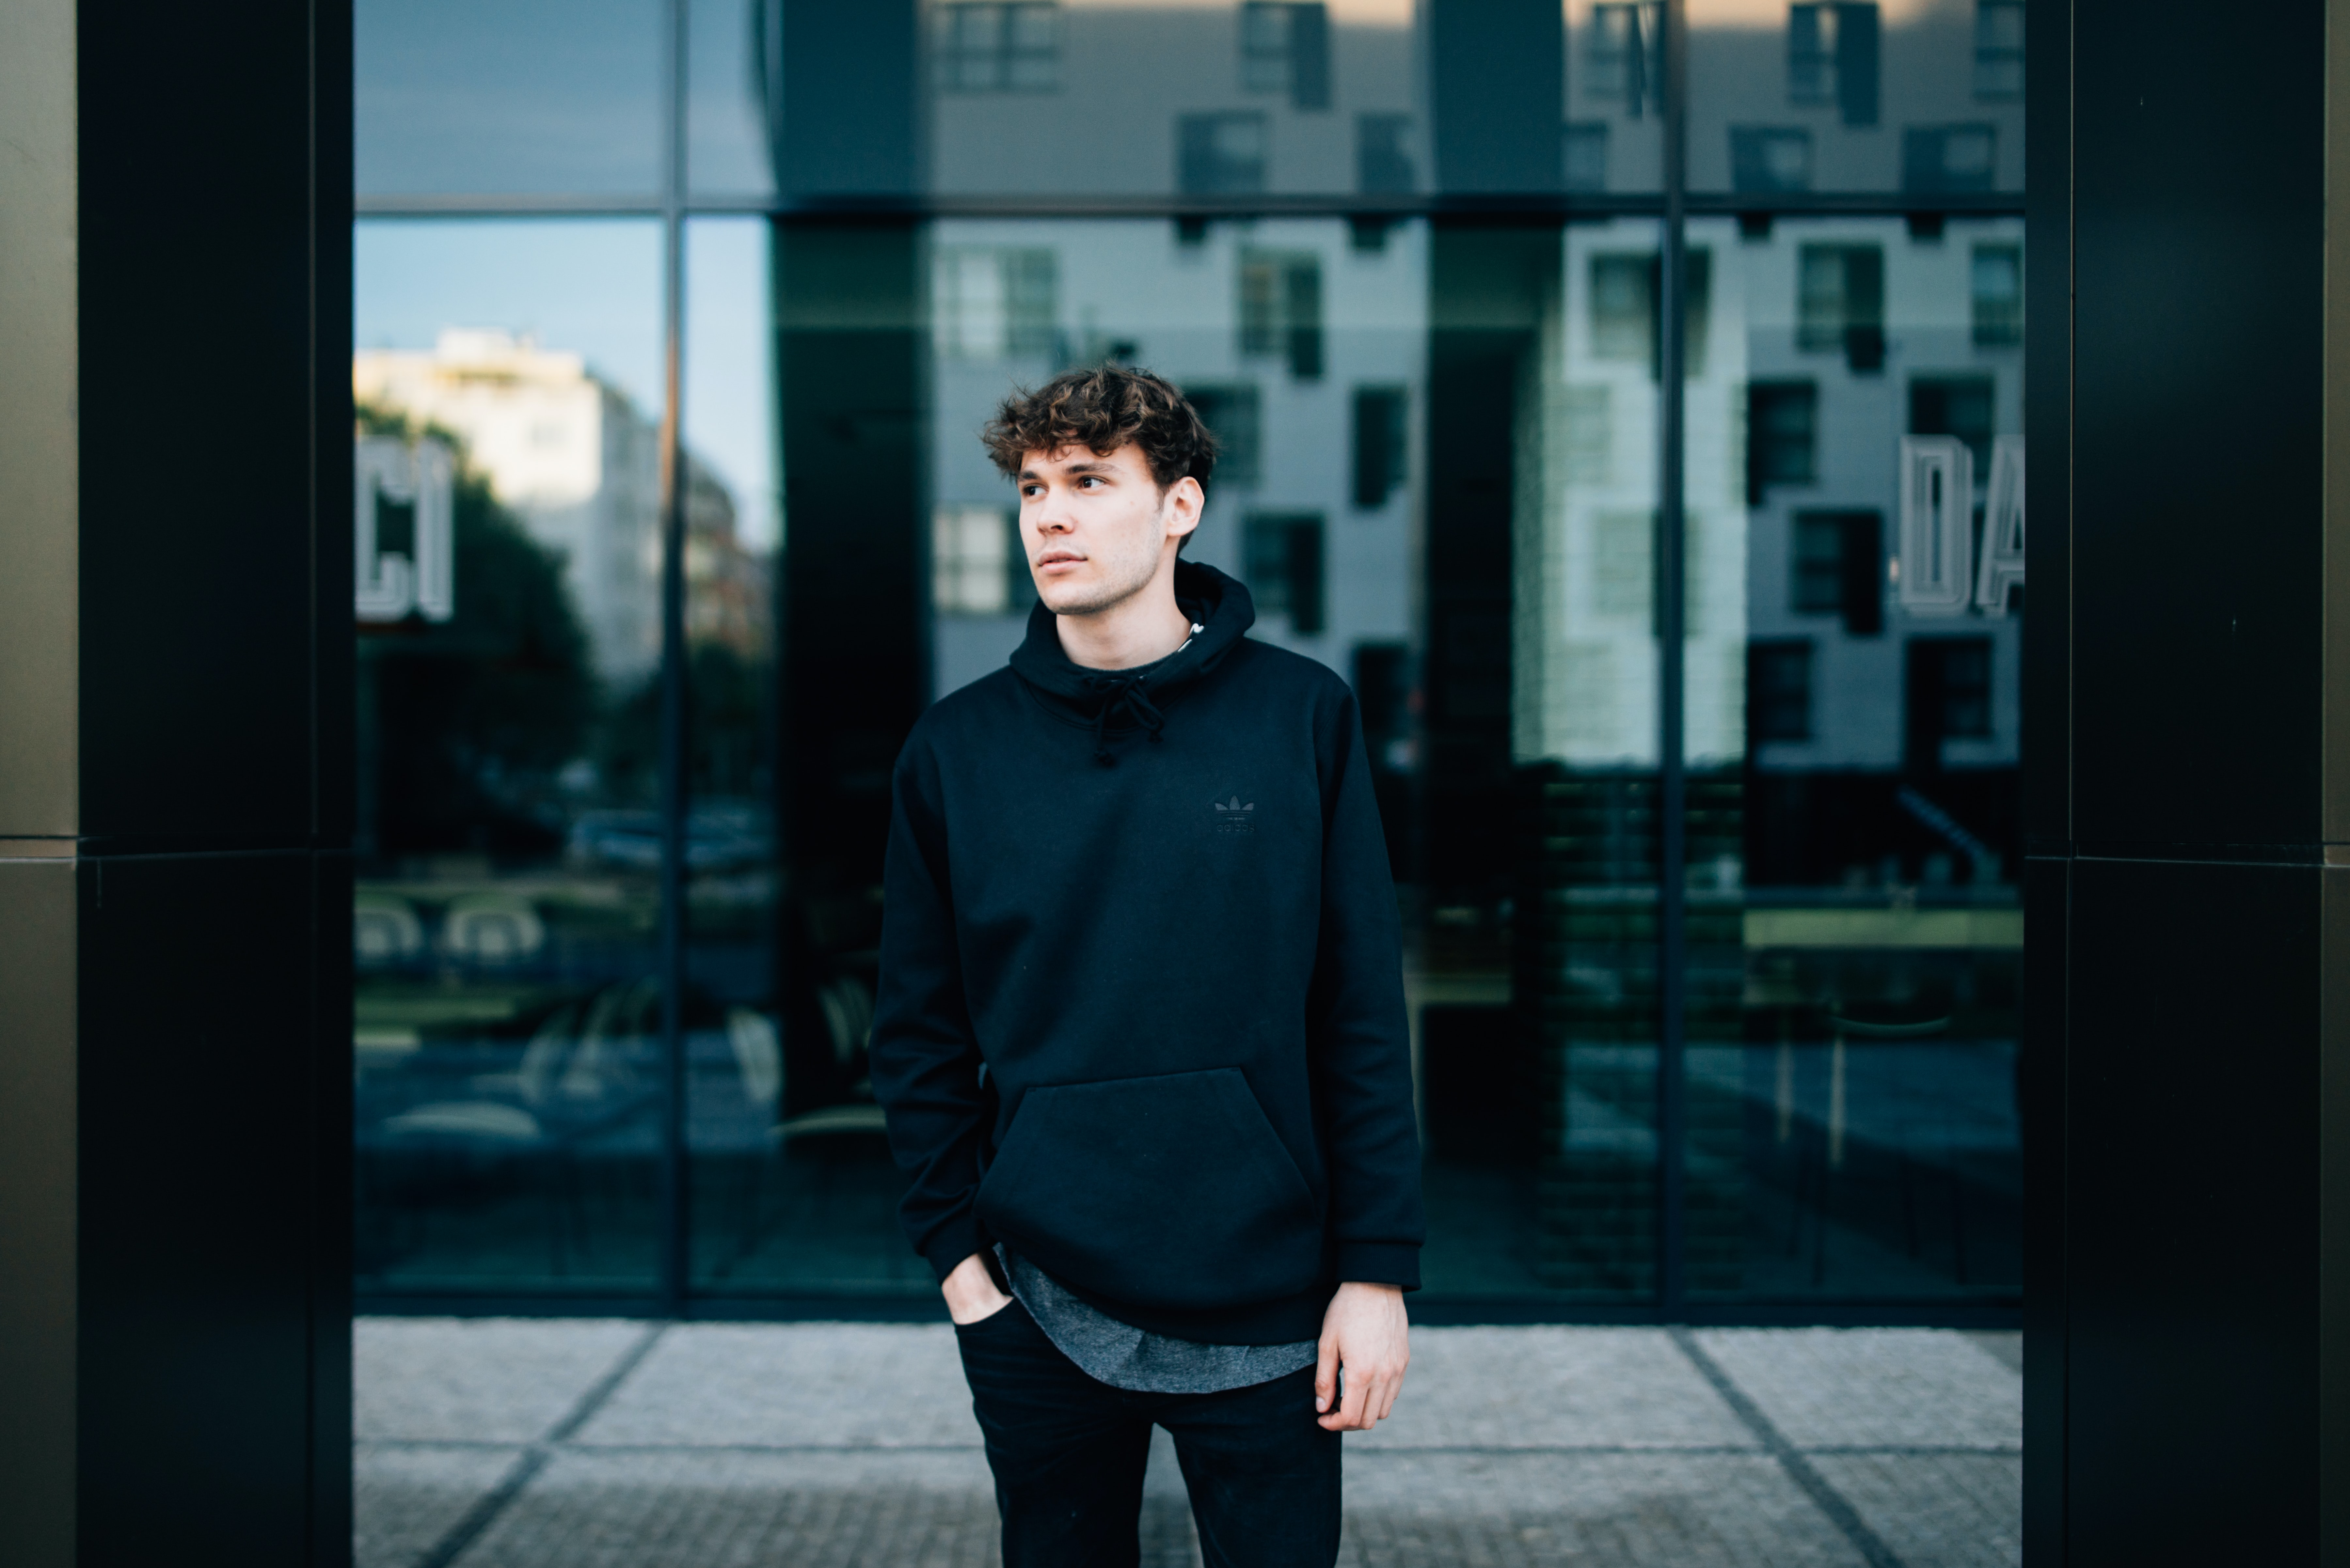 Man in a balck hoodie stands in front of a reflective store window